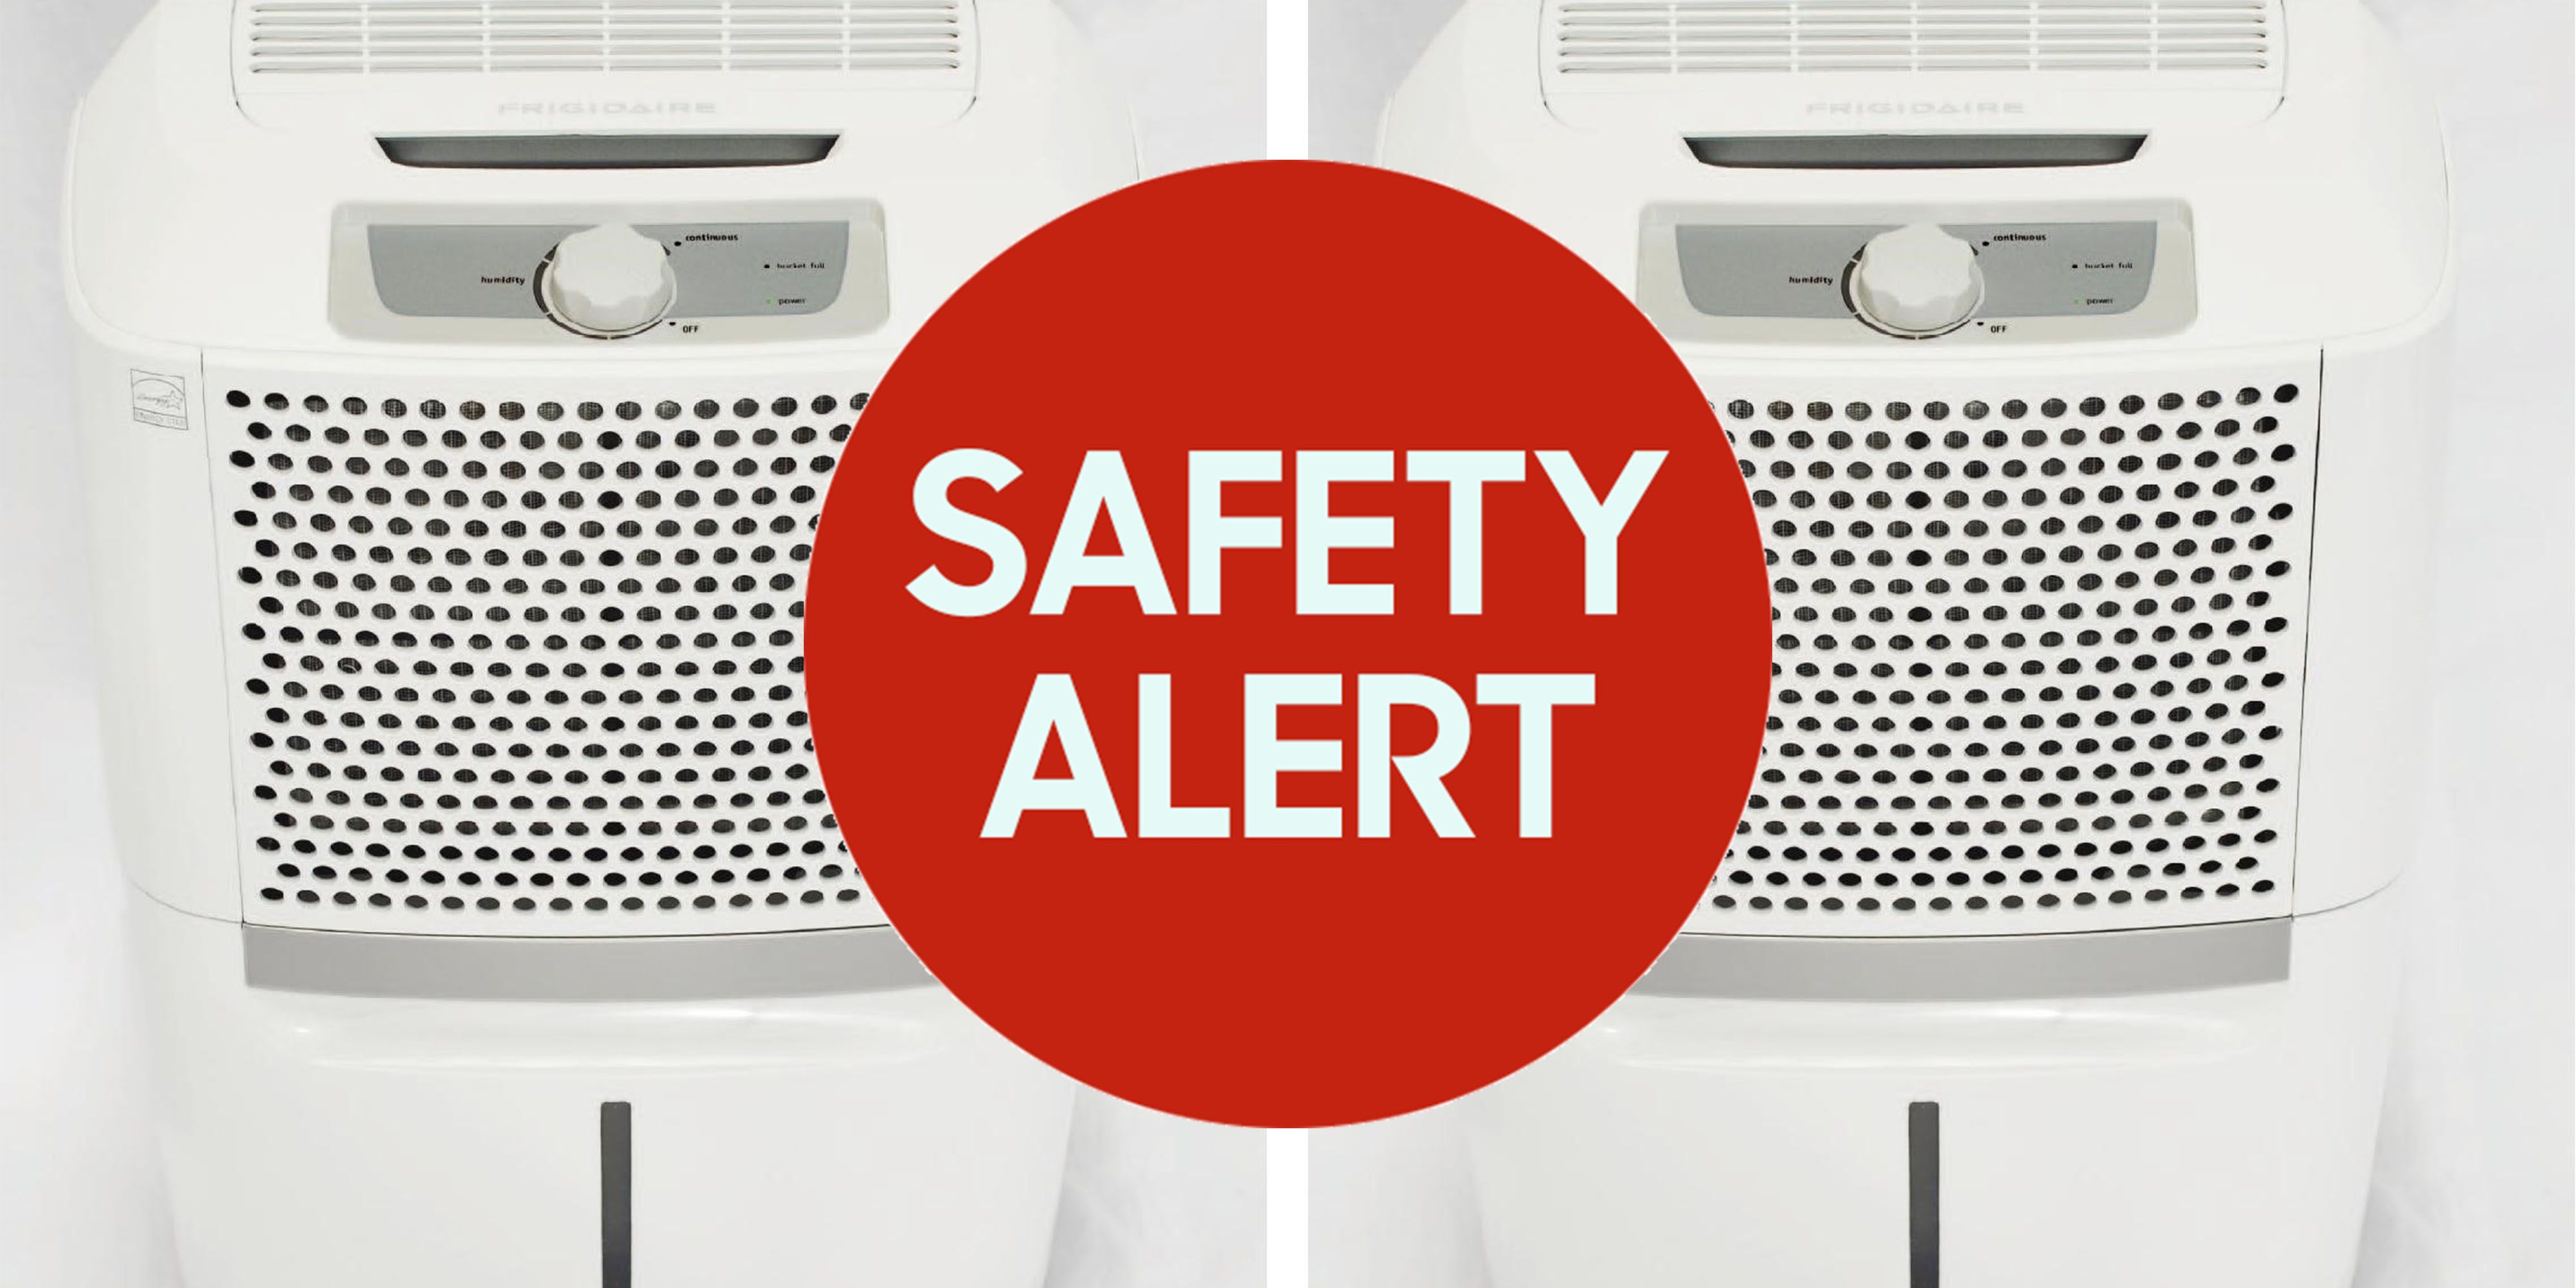 34 Million Dehumidifiers Recalled For Fire Risk Midea Recall